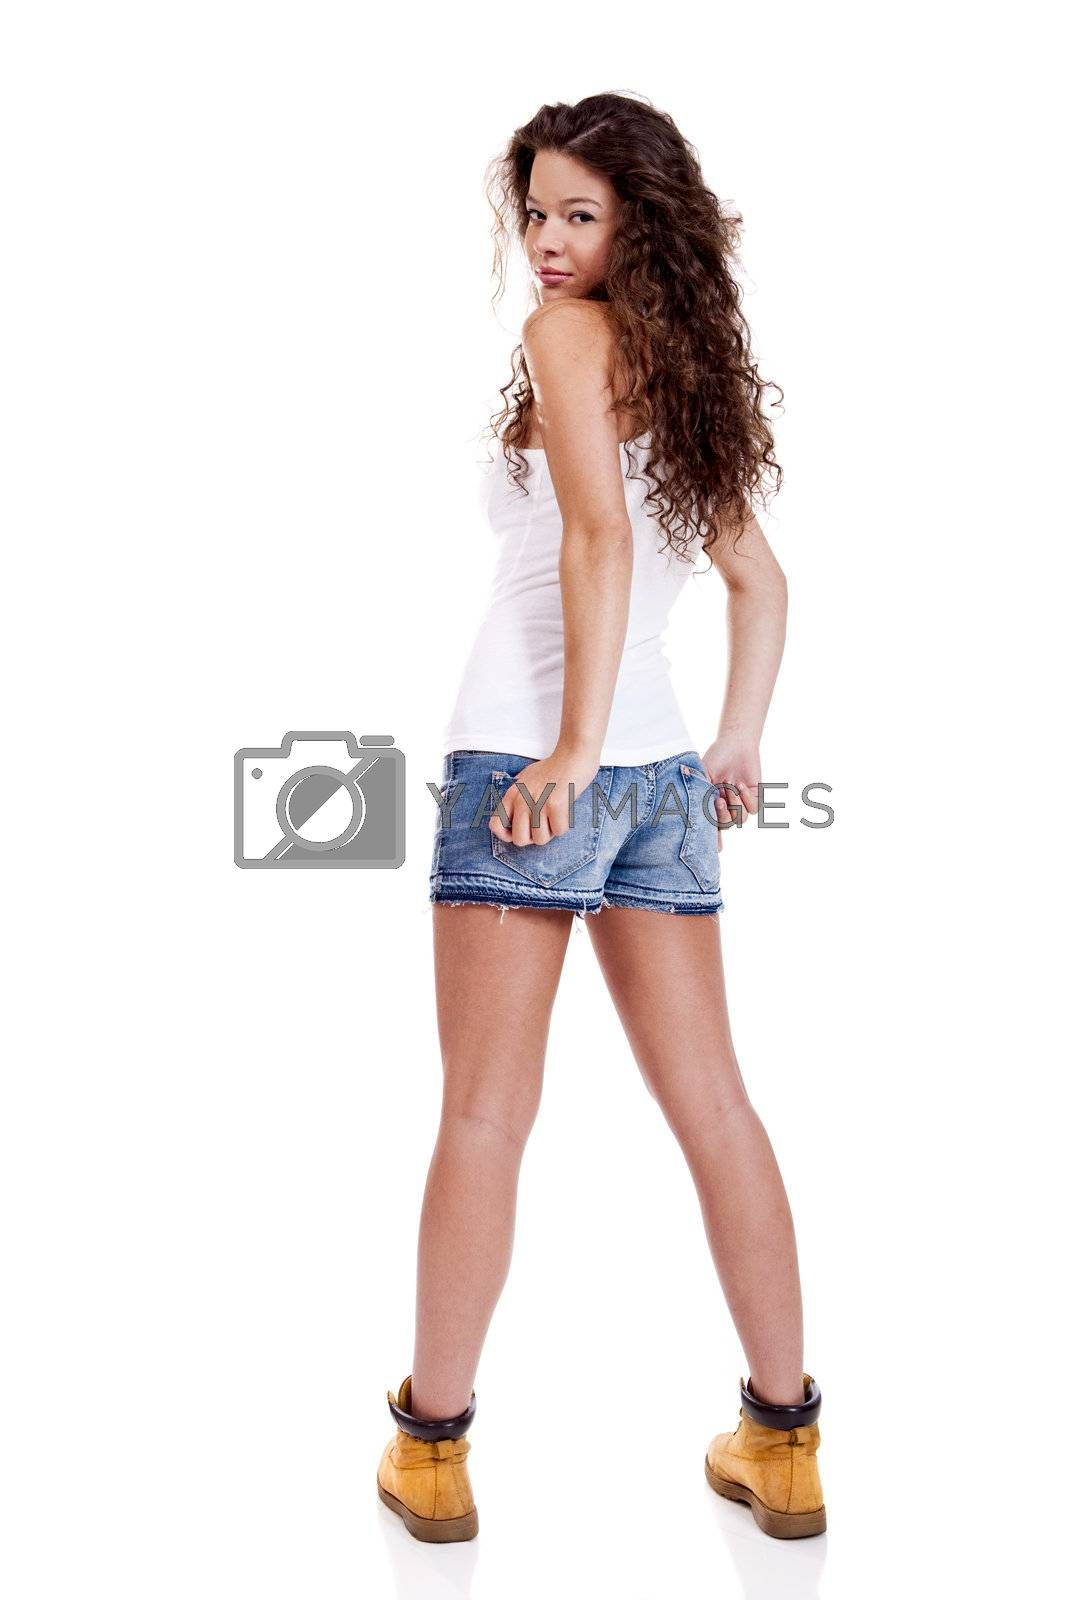 Royalty free image of Beautiful young woman by Iko